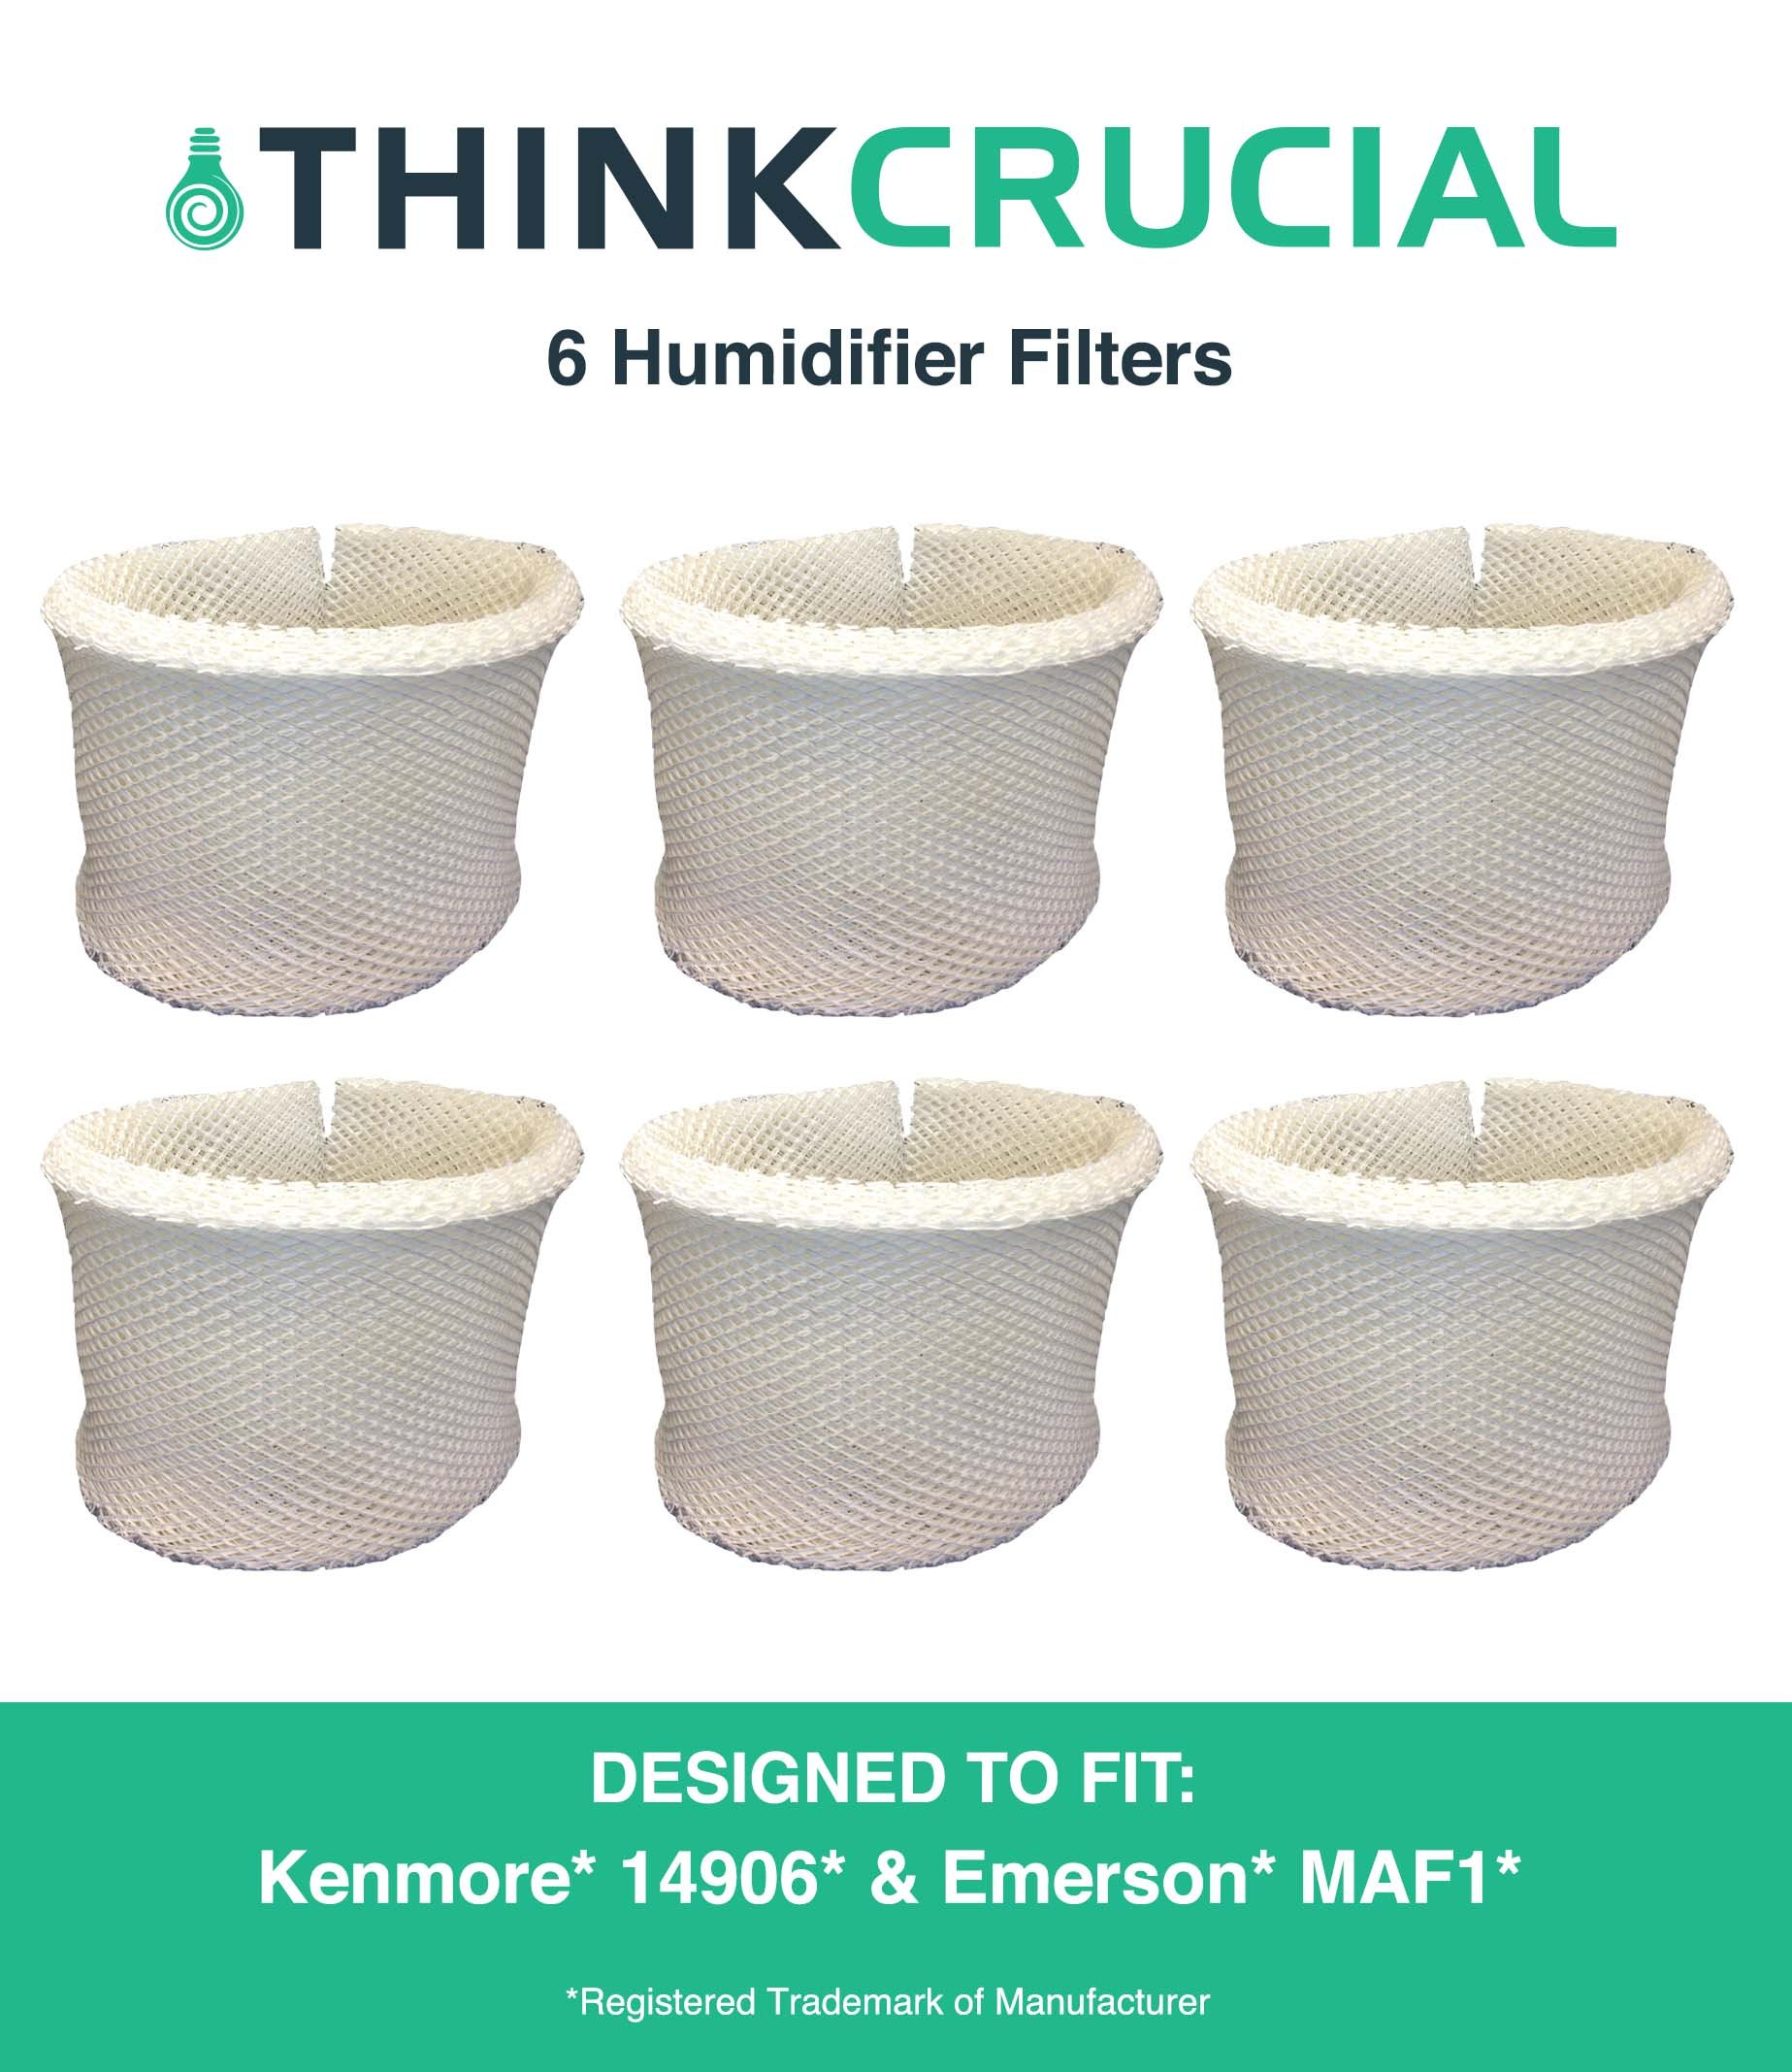 Think Crucial 6 Replacements for Kenmore 14906 EF1 & Emerson MAF1 Humidifier Wick Filter Fits 14410, 14411, 14906, 15412, 29979, 29980, 29981, 29982, 144105, 144106, Compatible With Part # 42-14906